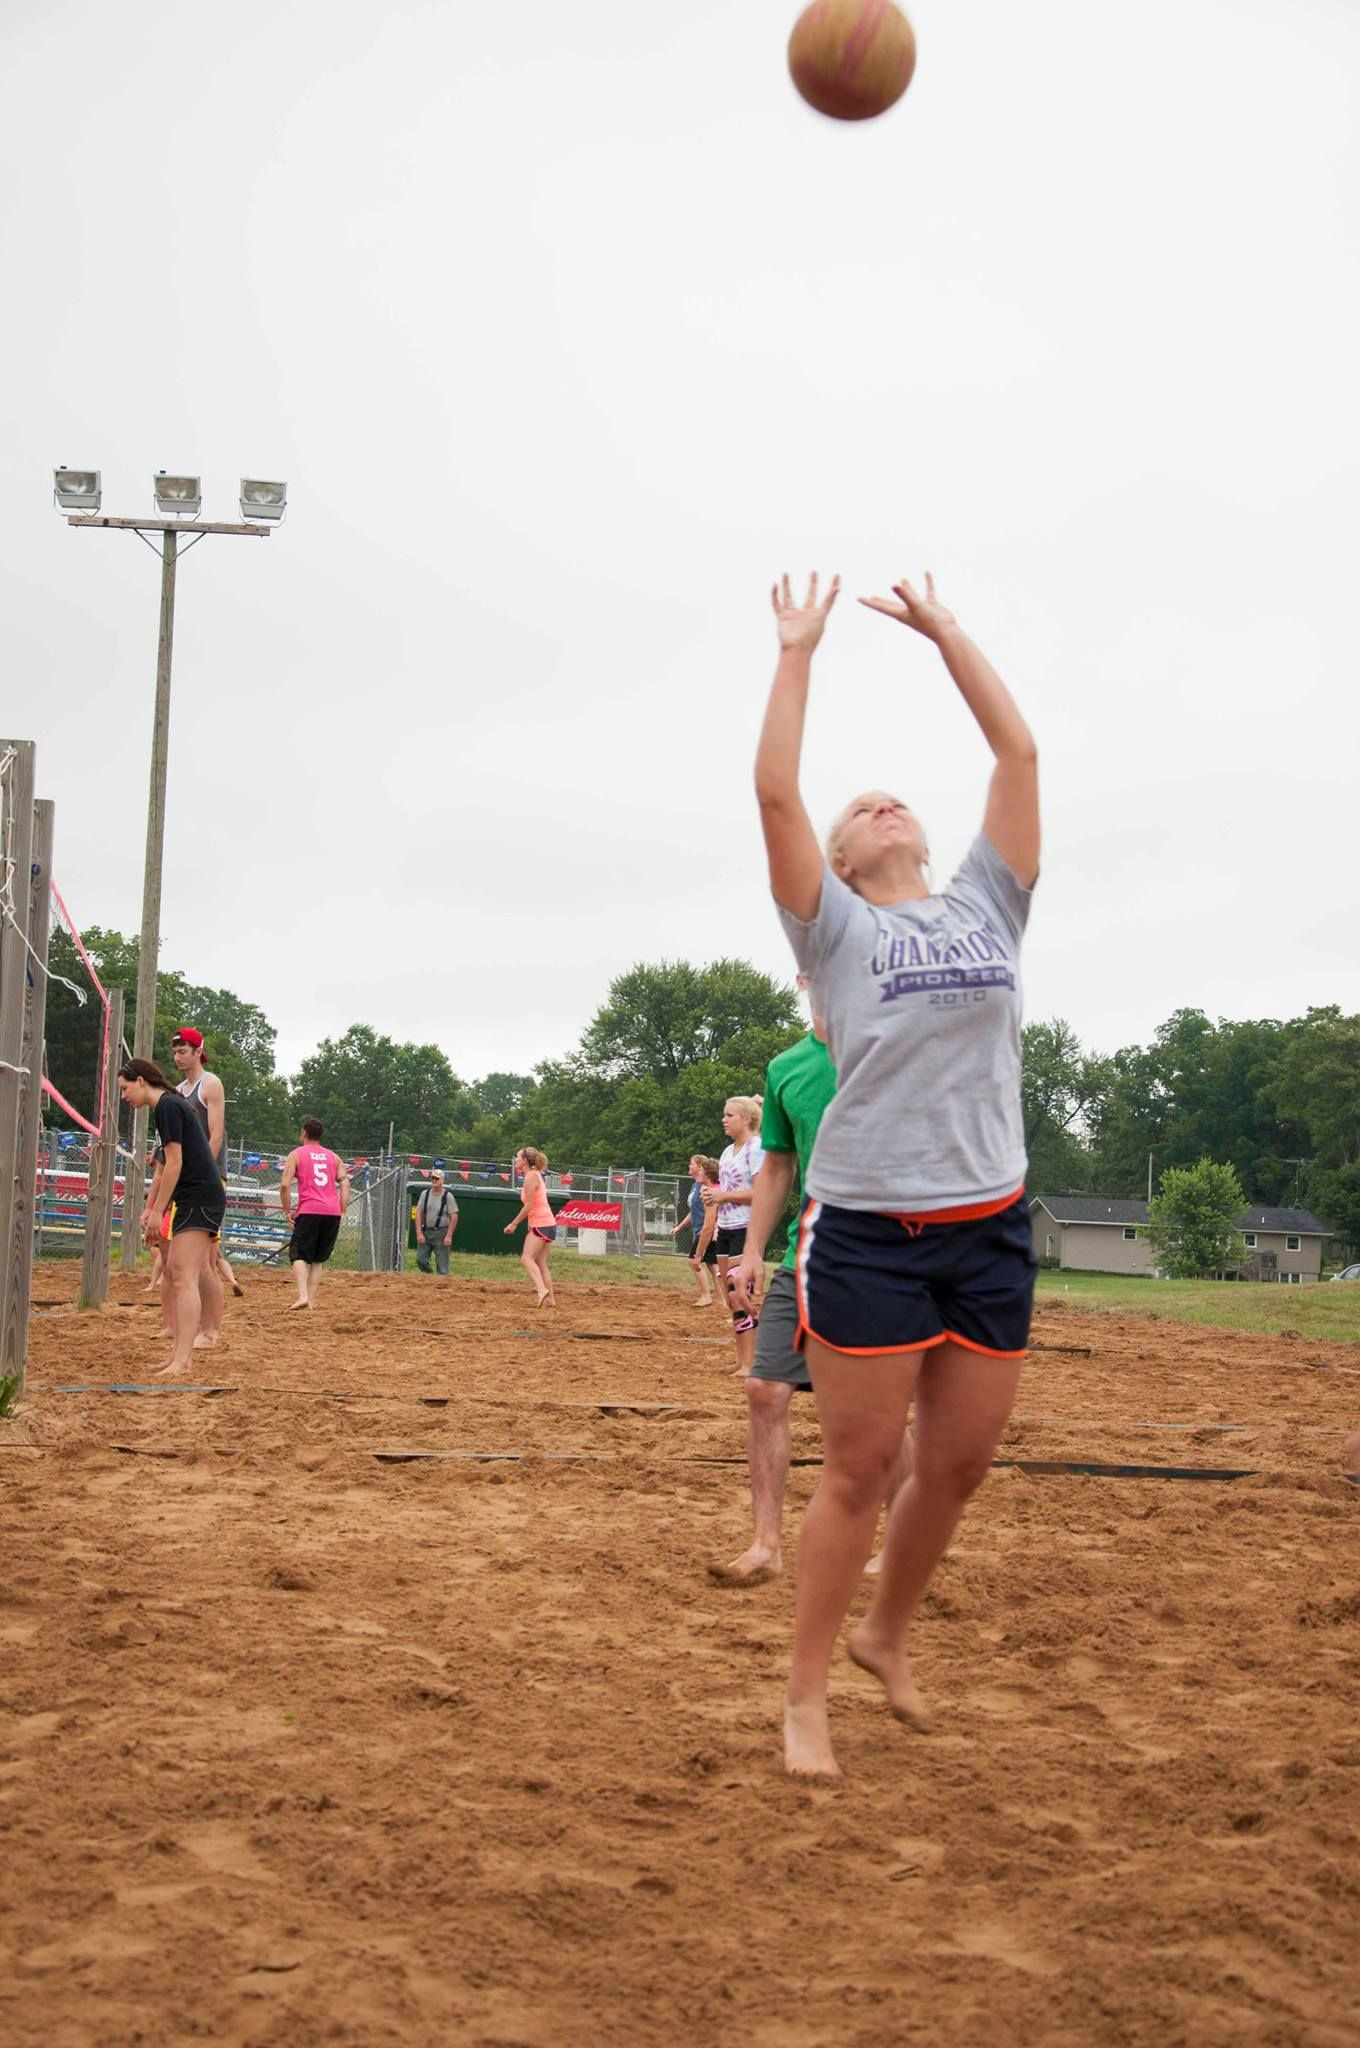 Adult Sand Volleyball Tournament Volleyball Tournaments Volleyball Game Design